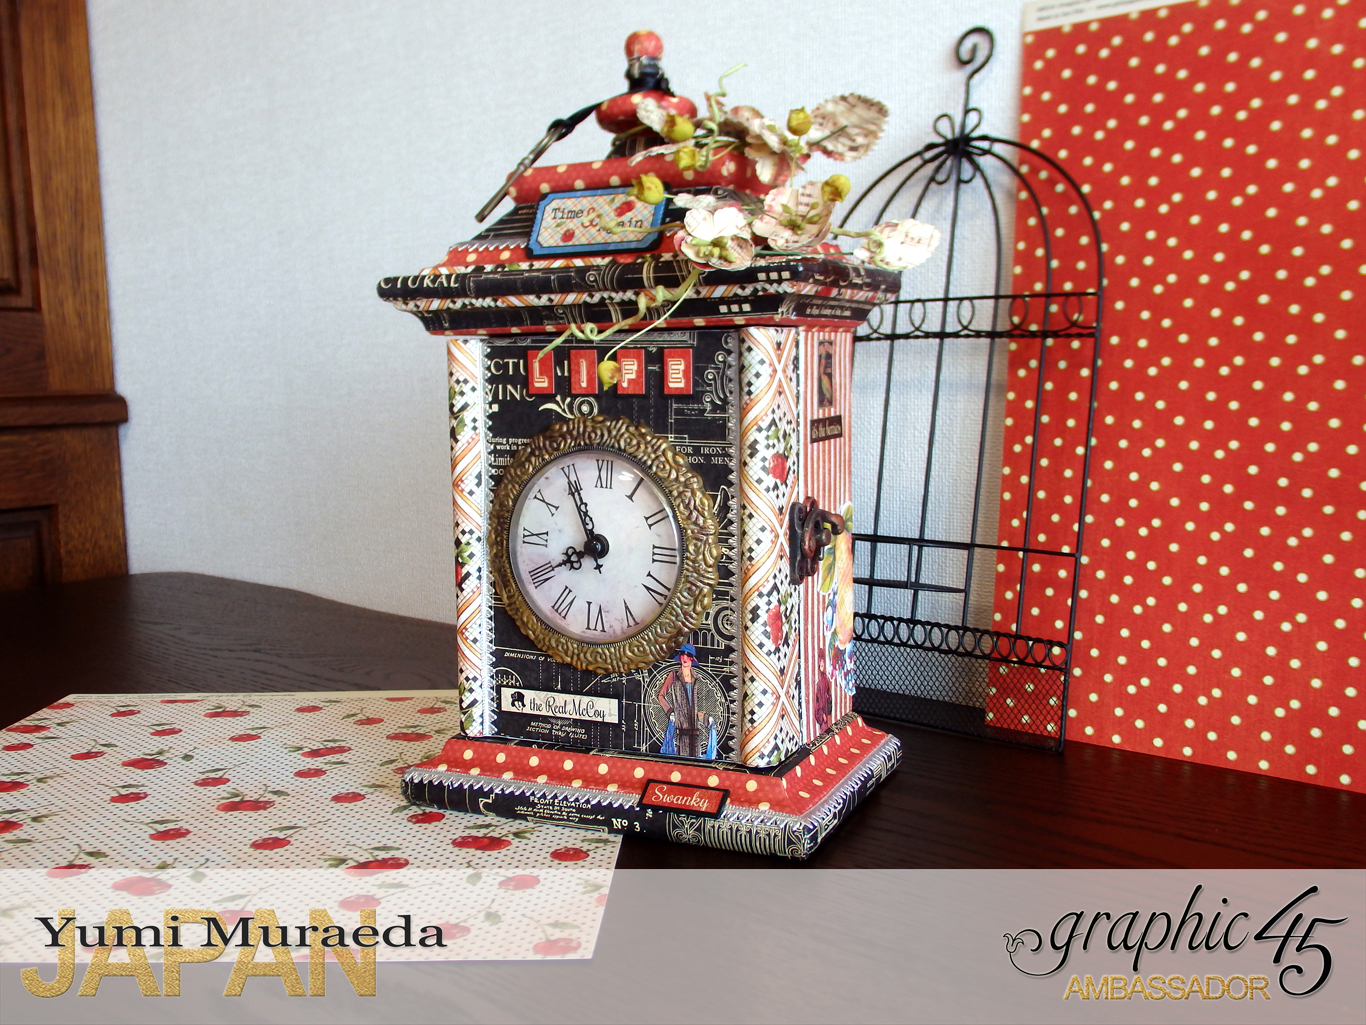 4Up Cycle Graphic45 DIY Craftpaper with Times Nouveau Secret Clock by Yumi Muraeada Product by Graphic 45 Photojpg